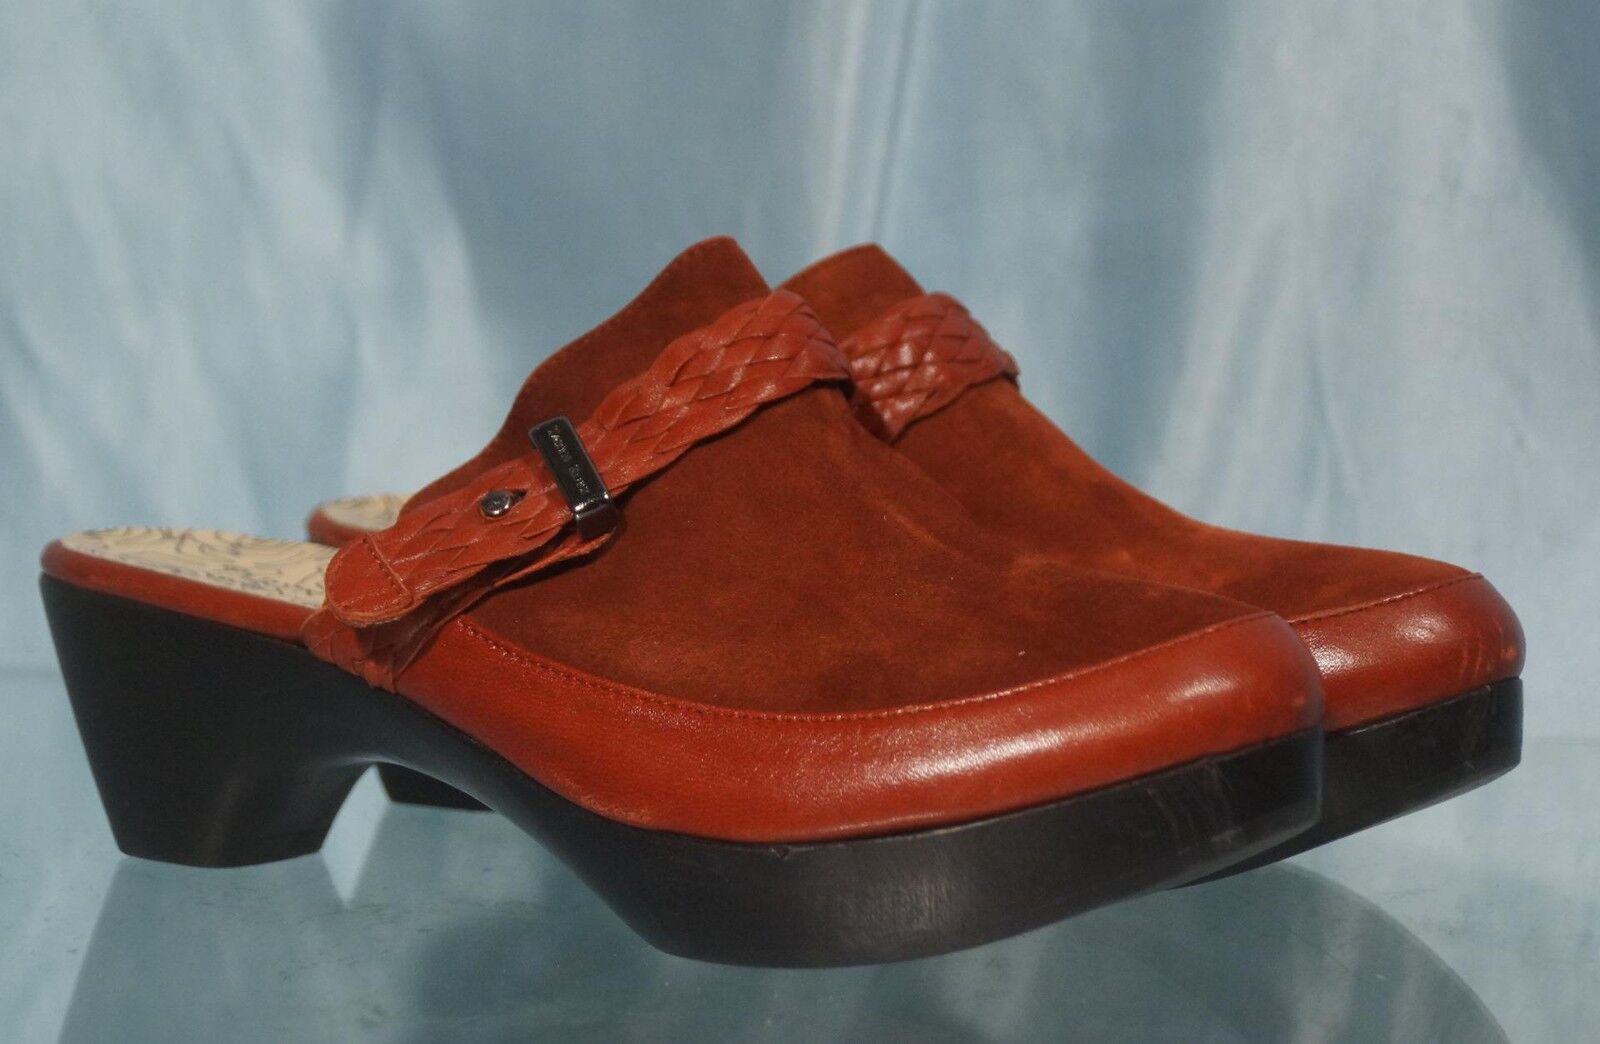 Very Nice Red Leather & Suede TARYN pink Mules or Slides Sz 6 EUR 36.5 M